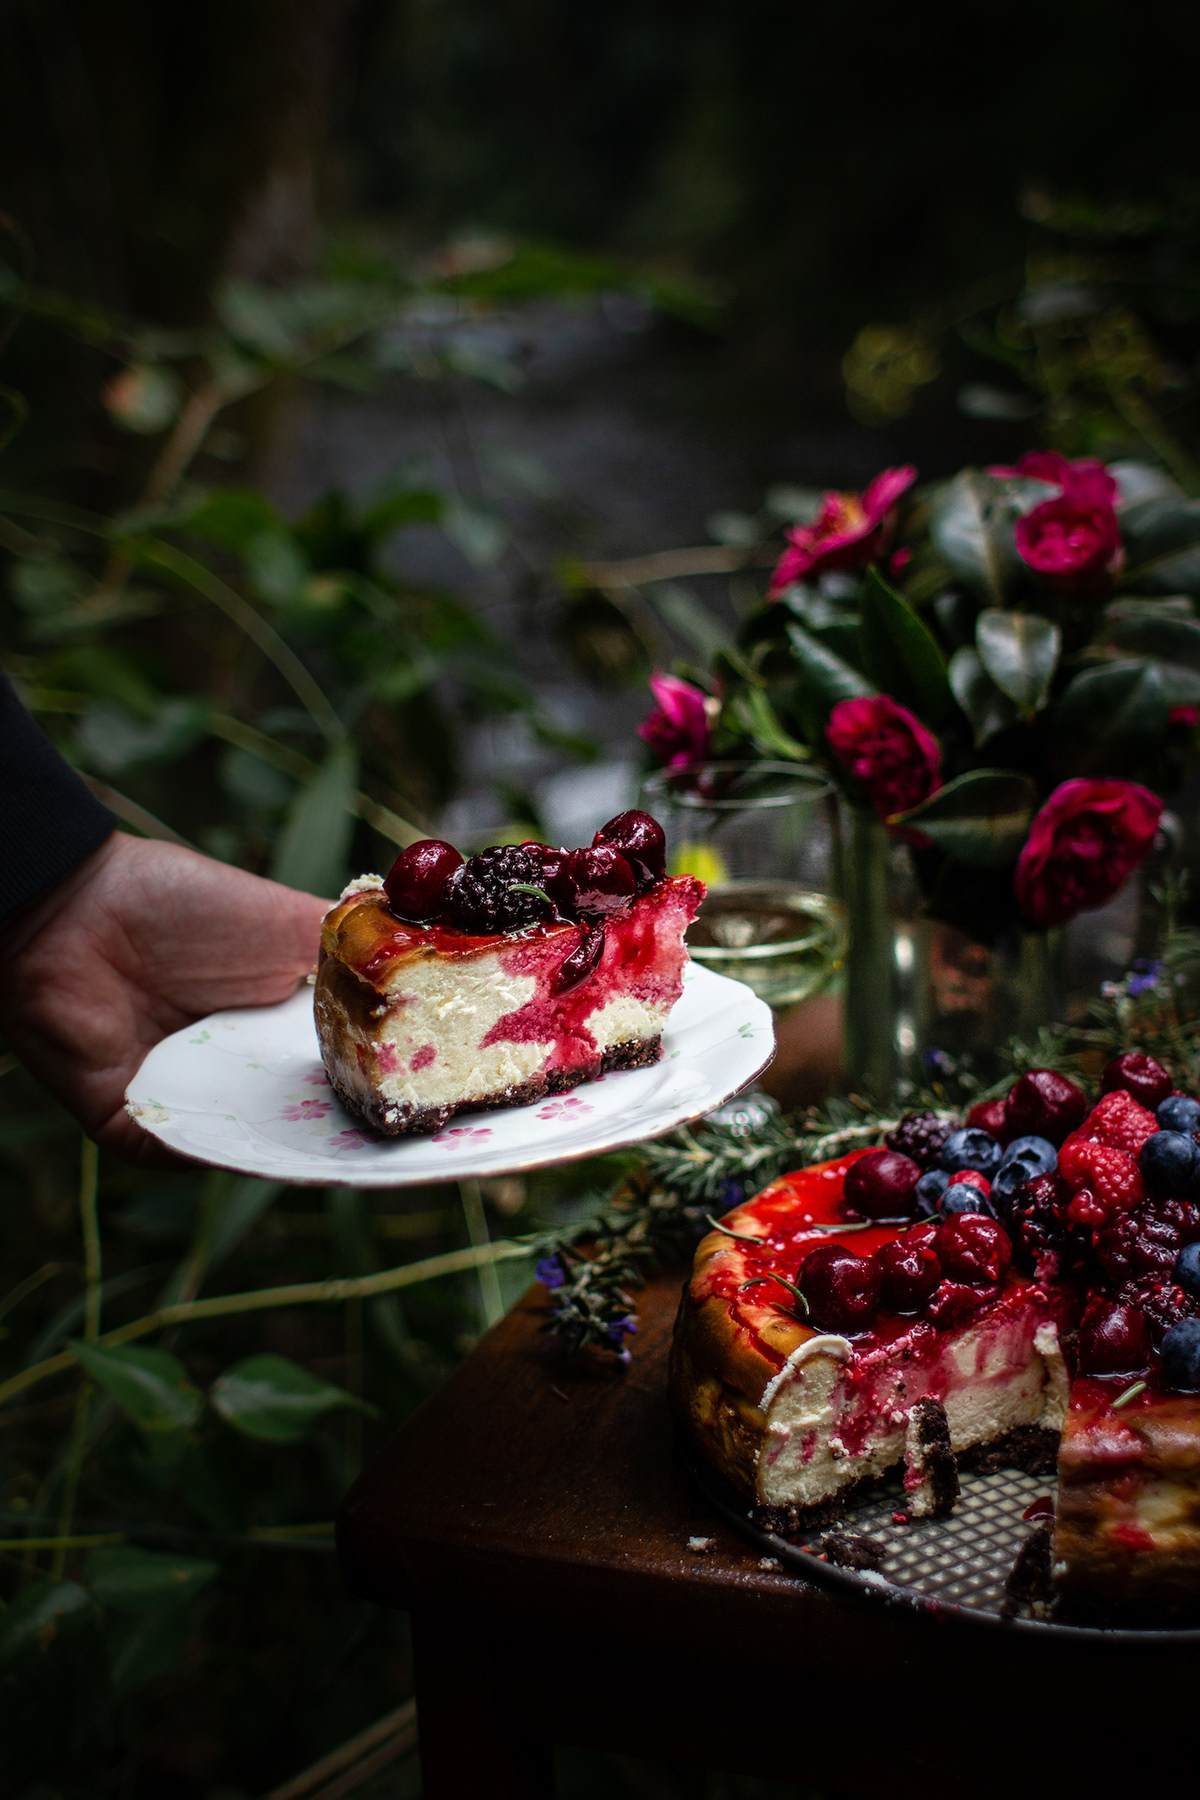 Cheesecake in the Forest